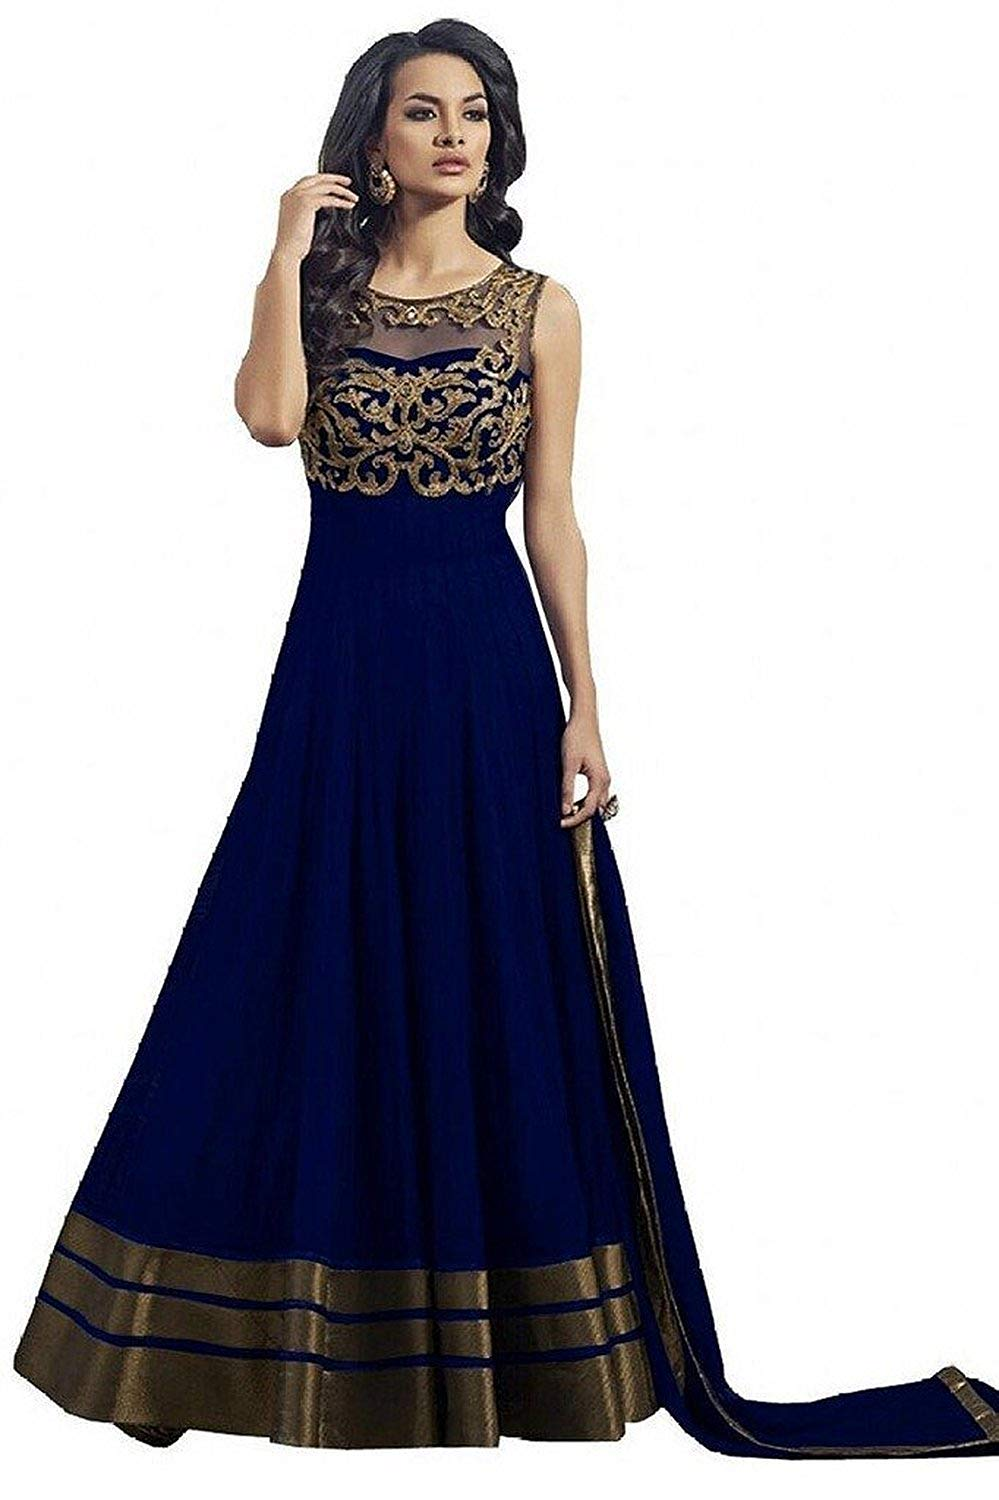 Market Magic World Women's Georgette Semi Stitched Ethnic Wear Lehenga Choli (lehengas- Amazon